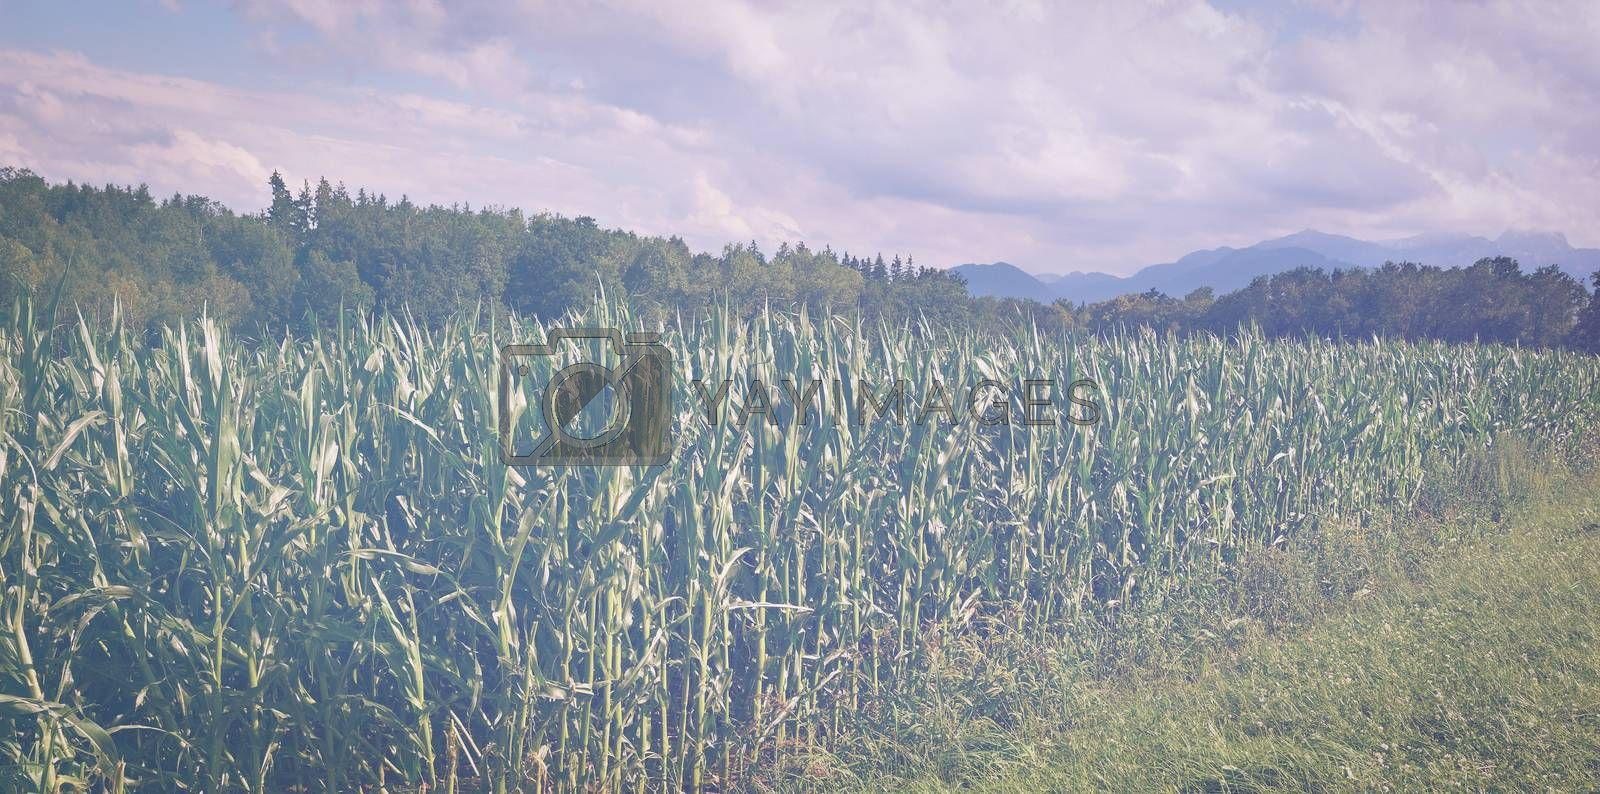 Deserted fields of Germany Deserted Venice in faded color effect. Maize plantation in southern Bavaria.